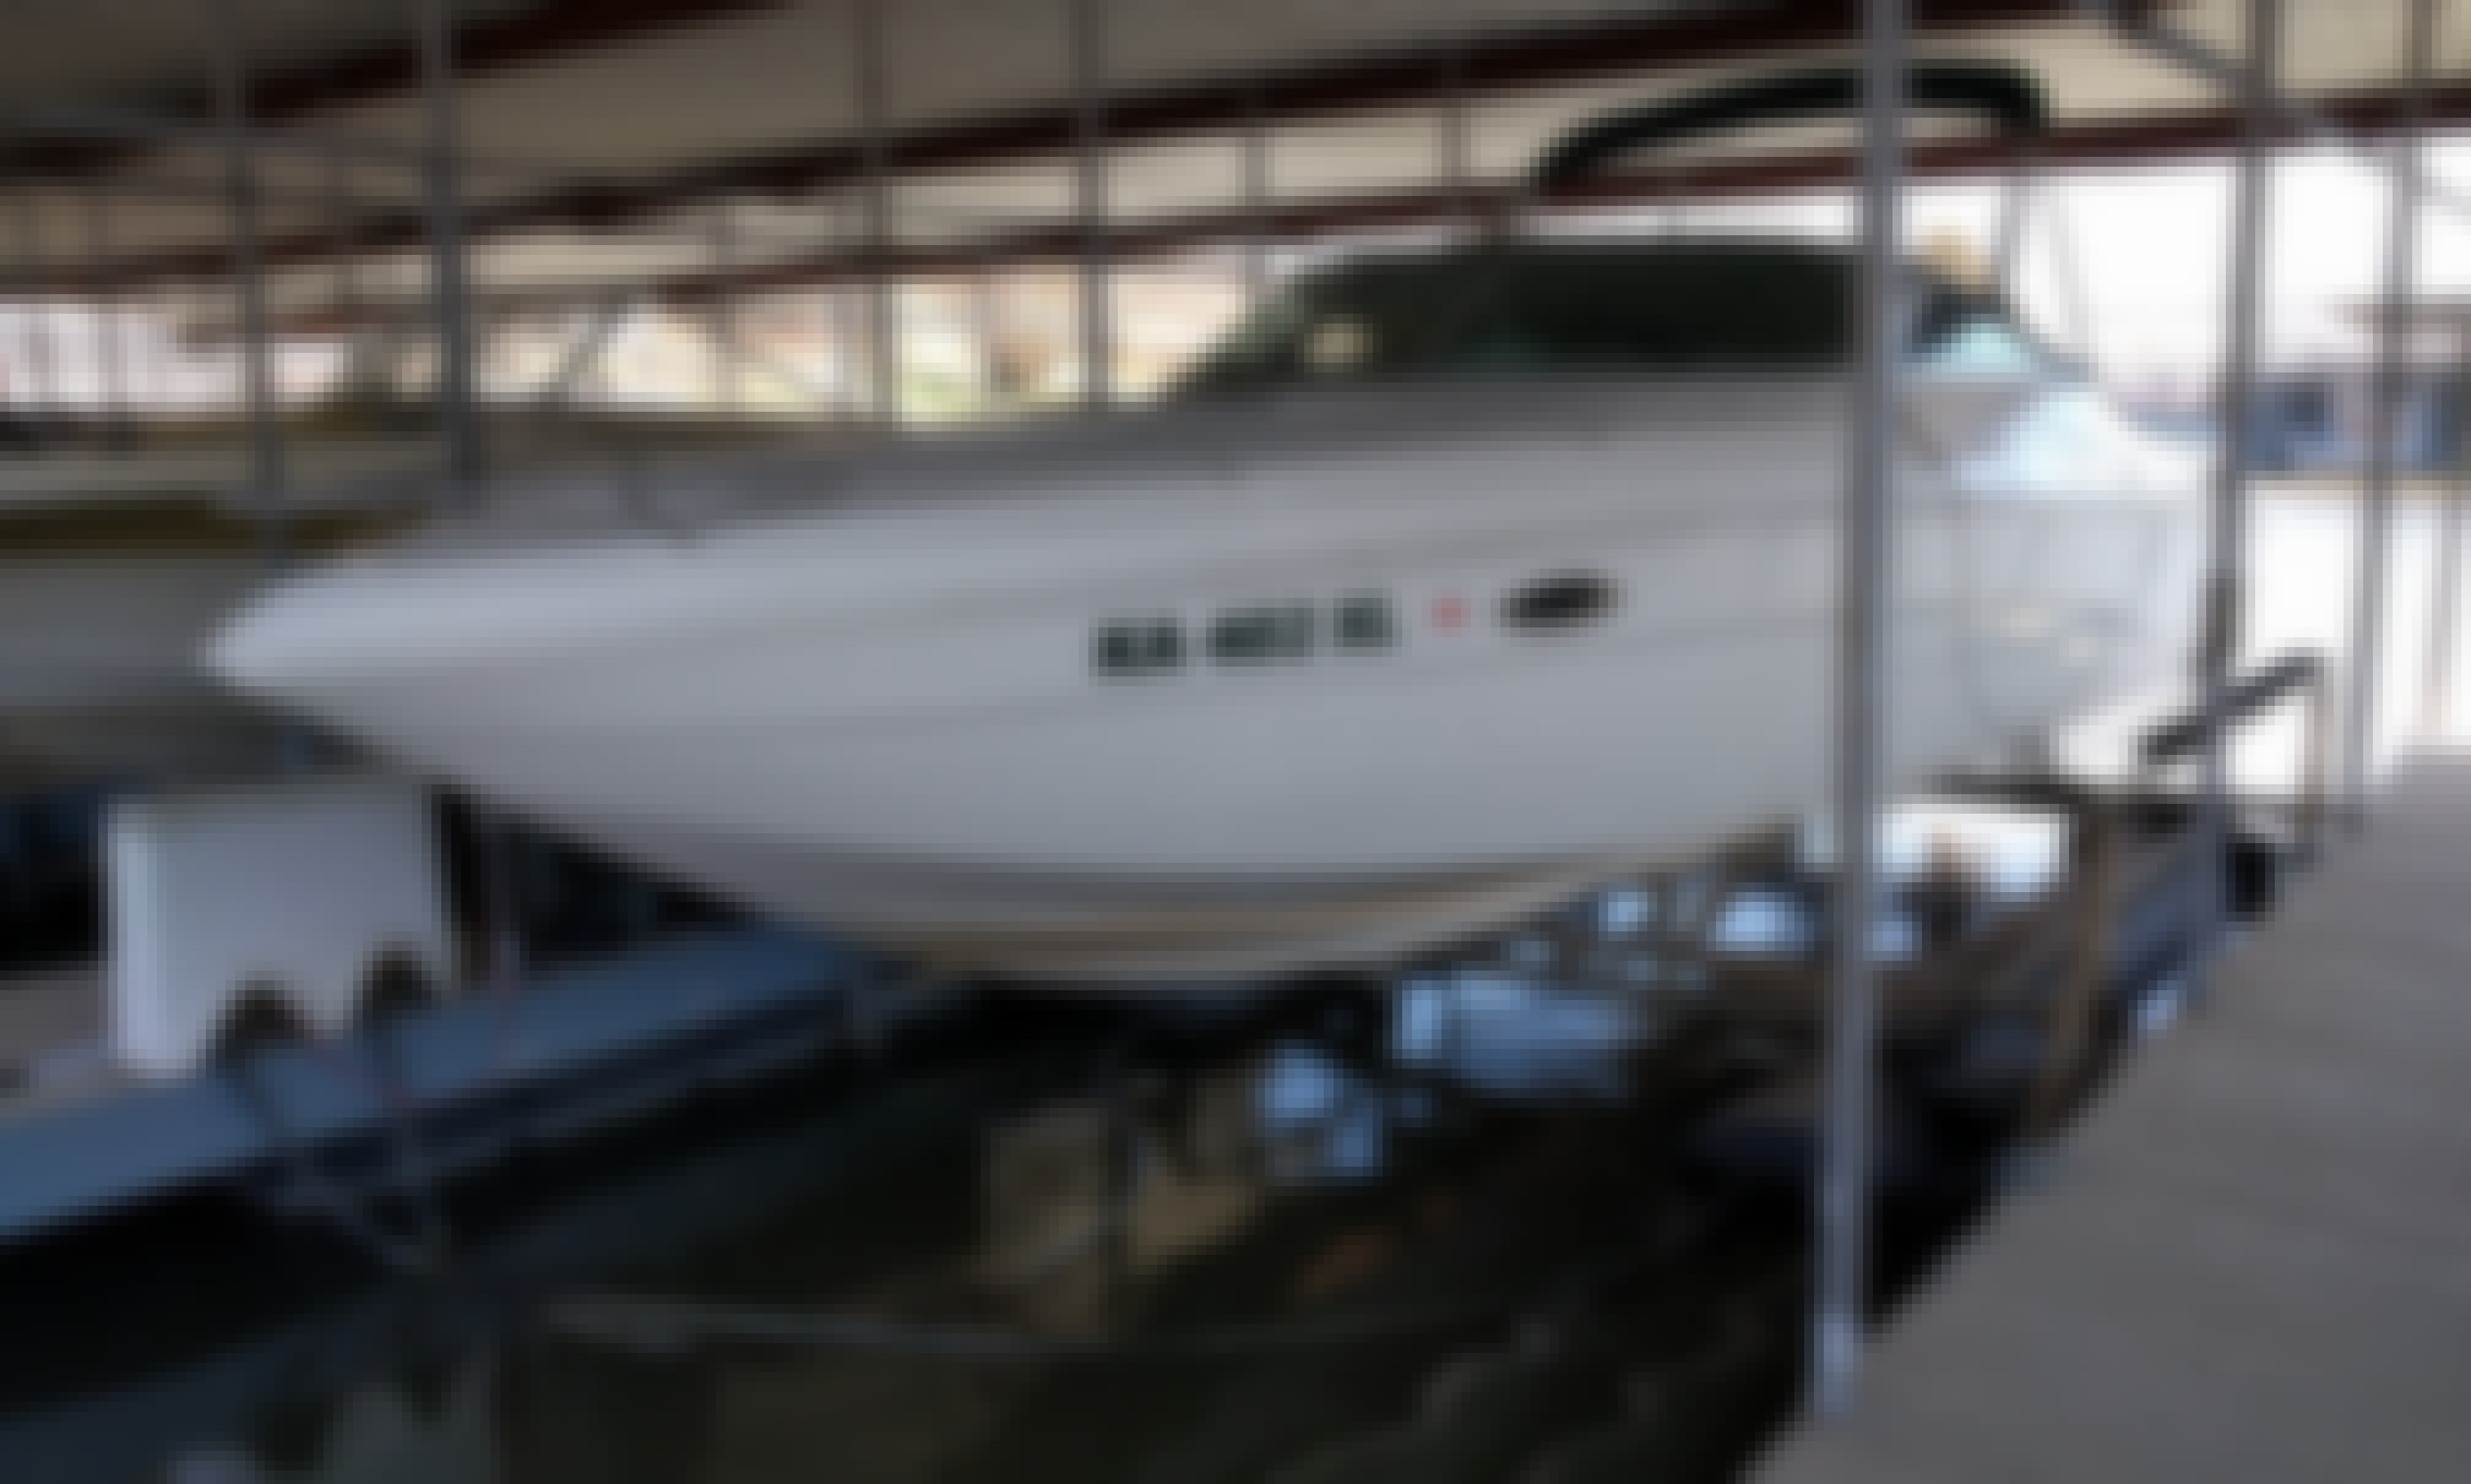 Rinker Captiva 27' Bowrider in Osage Beach